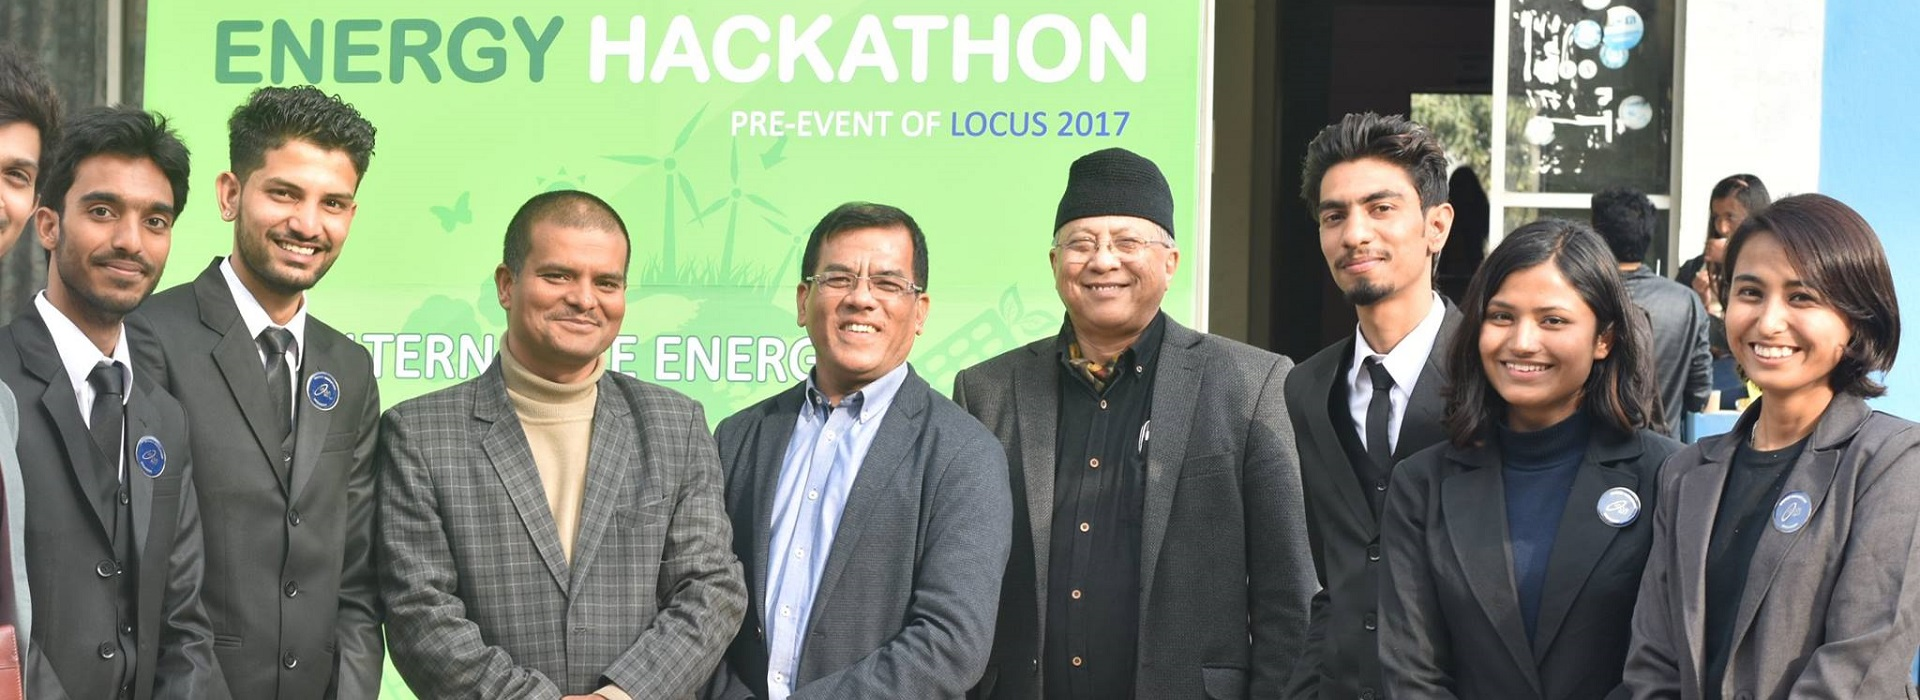 Energy Hackathon Conducted By Locus